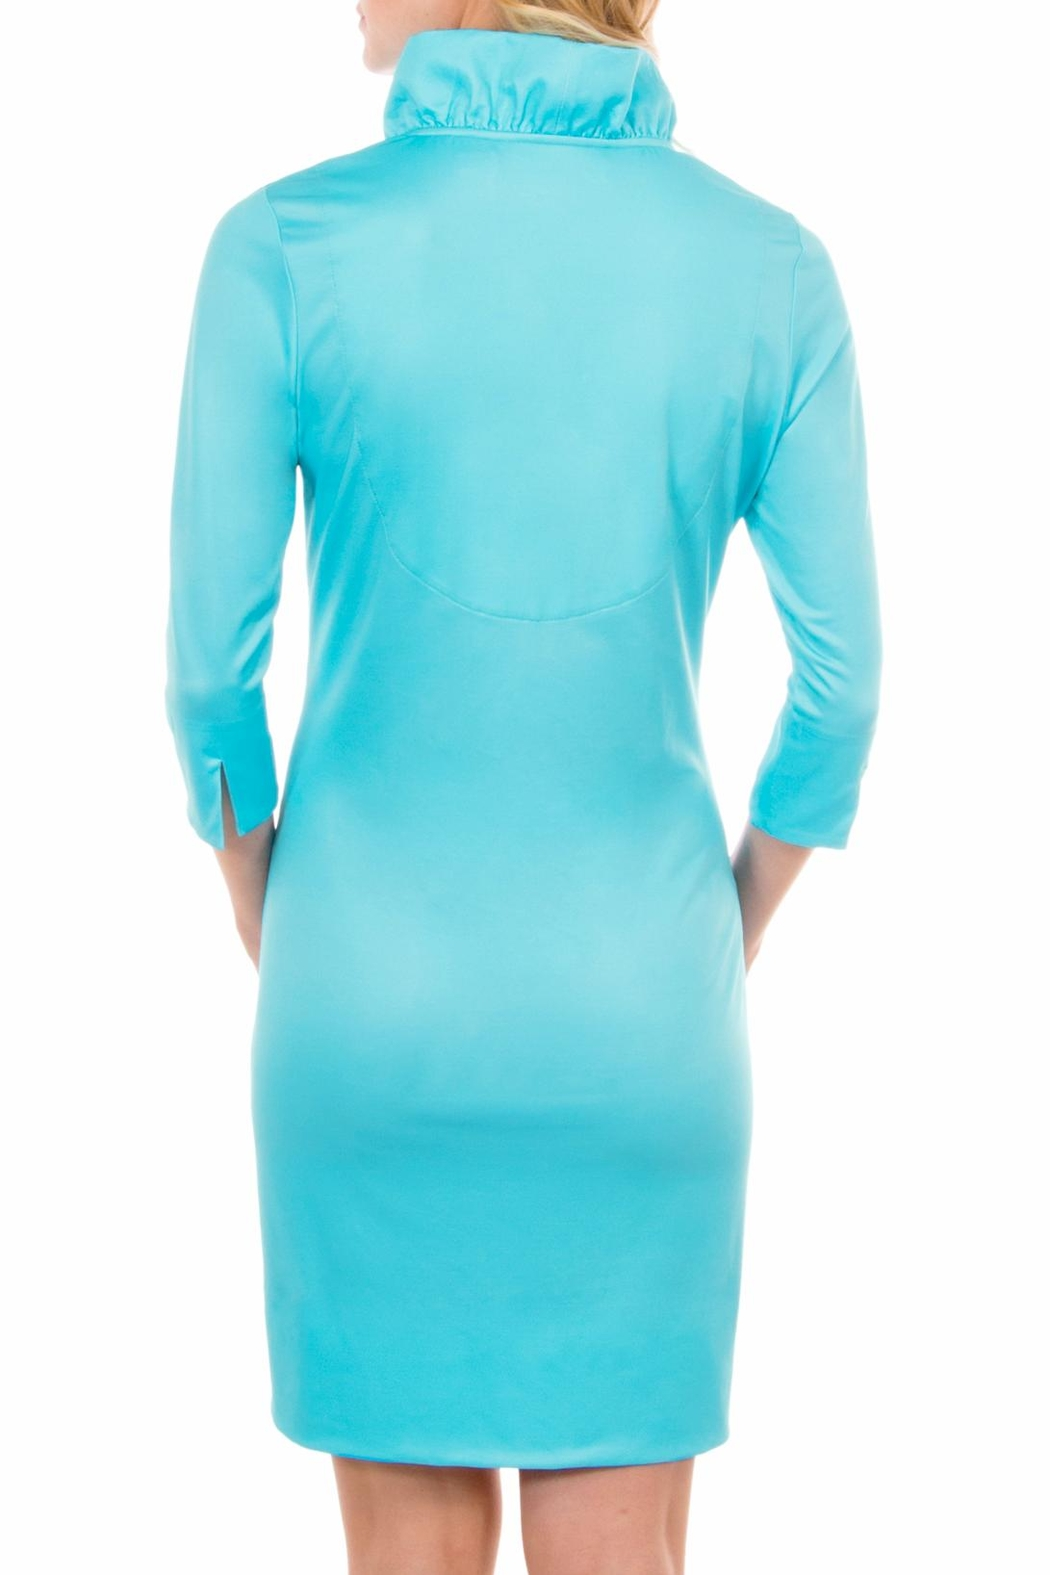 Gretchen Scott Ruffneck Jersey Dress - Side Cropped Image